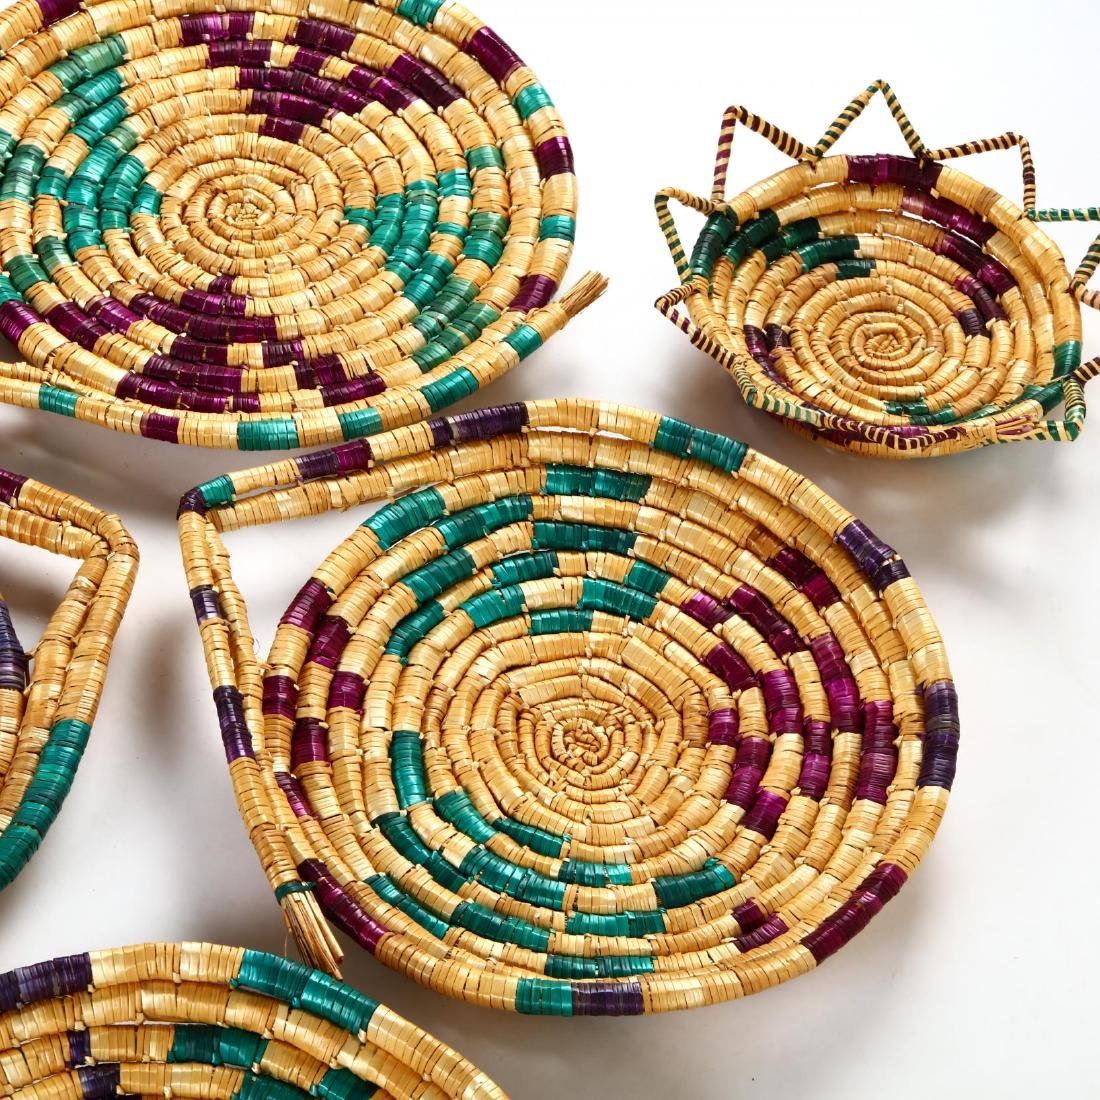 Set of Decorative Woven Straw Table Mats - 4